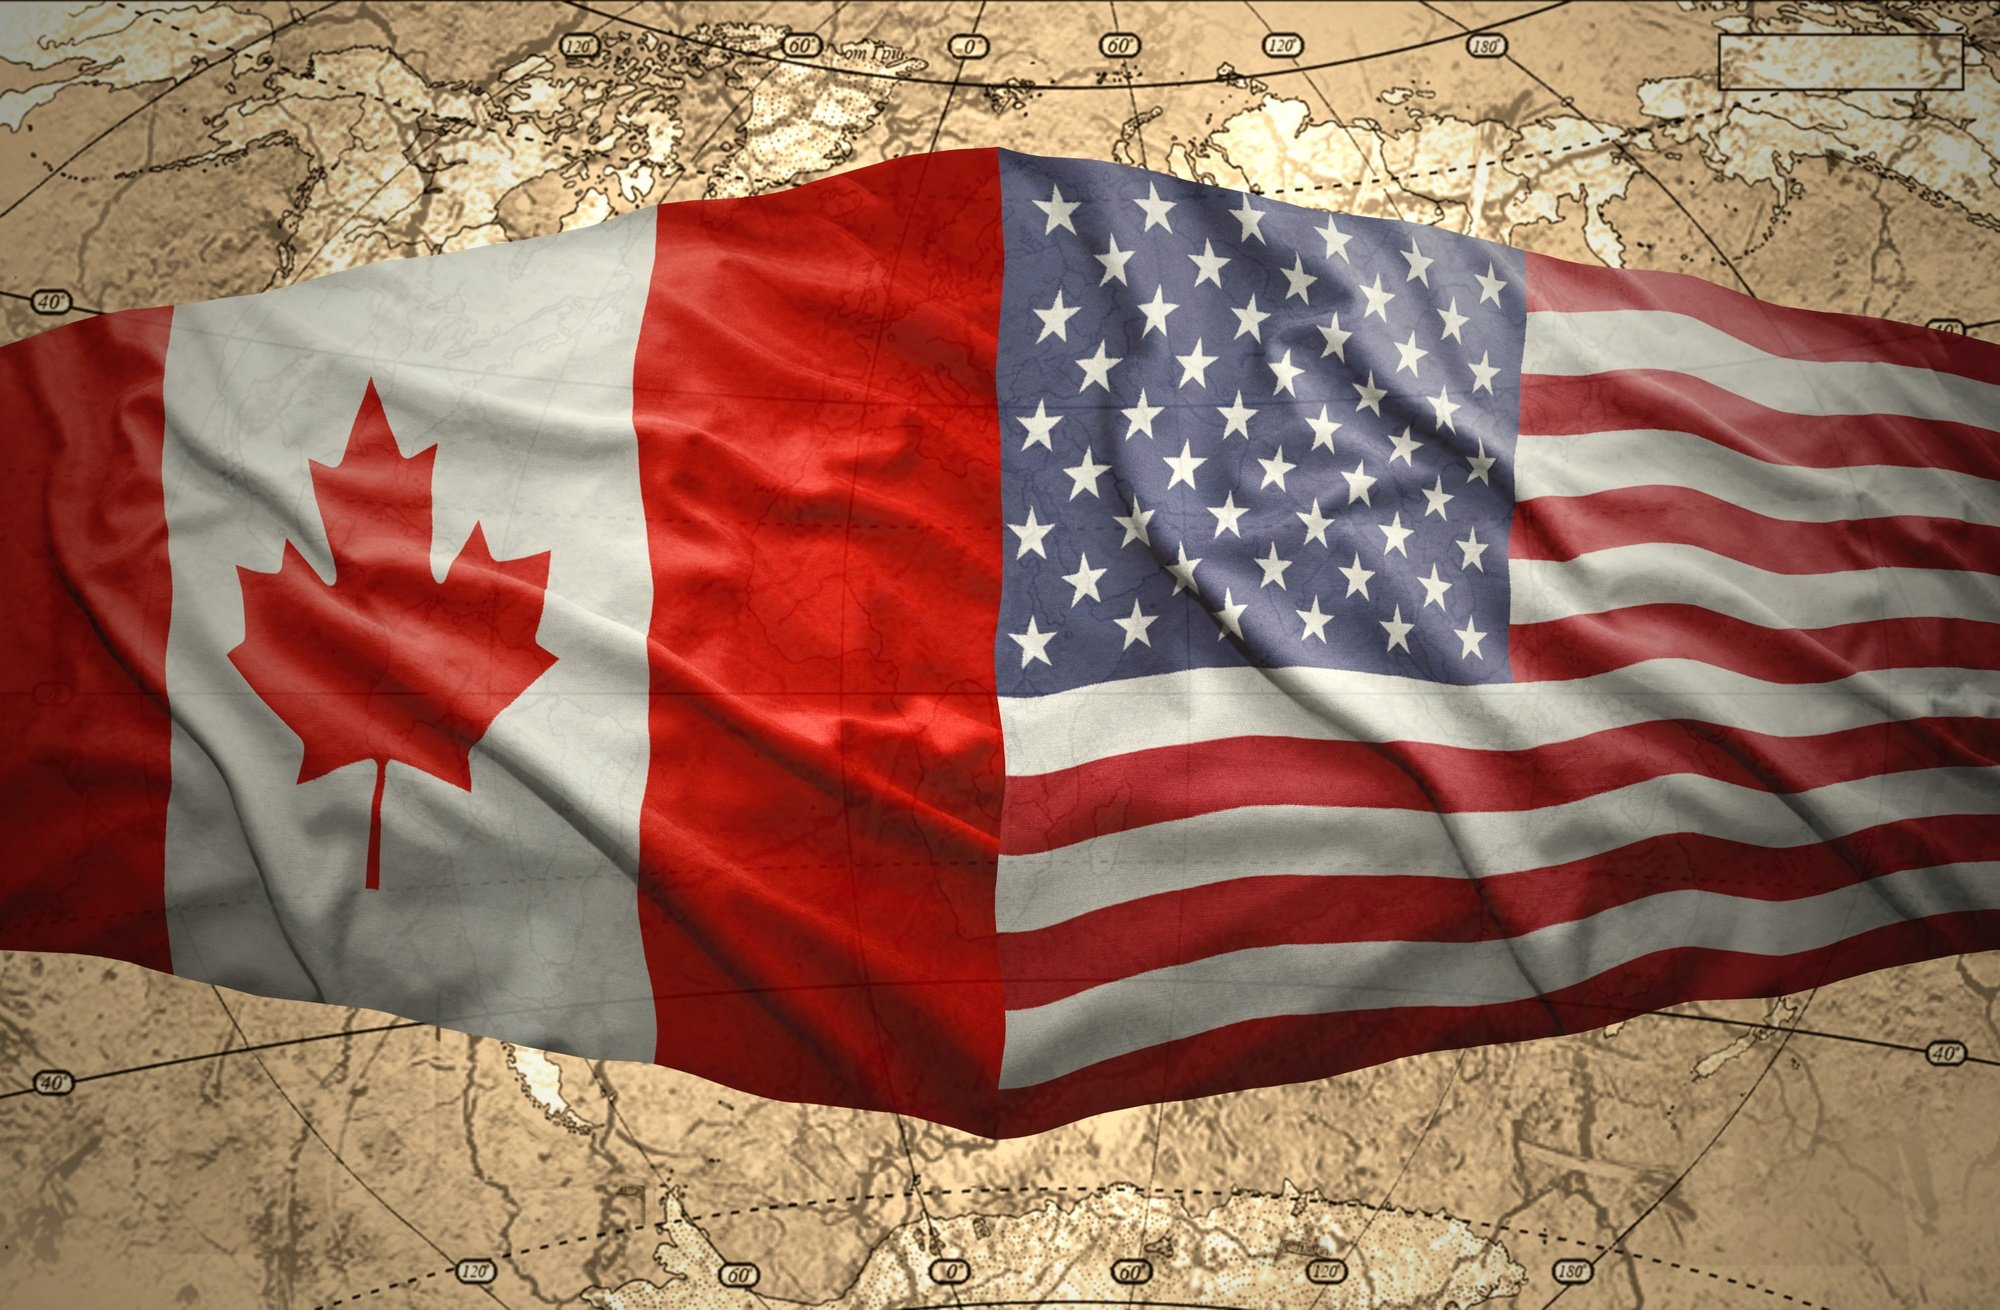 Canada and the USA share the world's longest international border